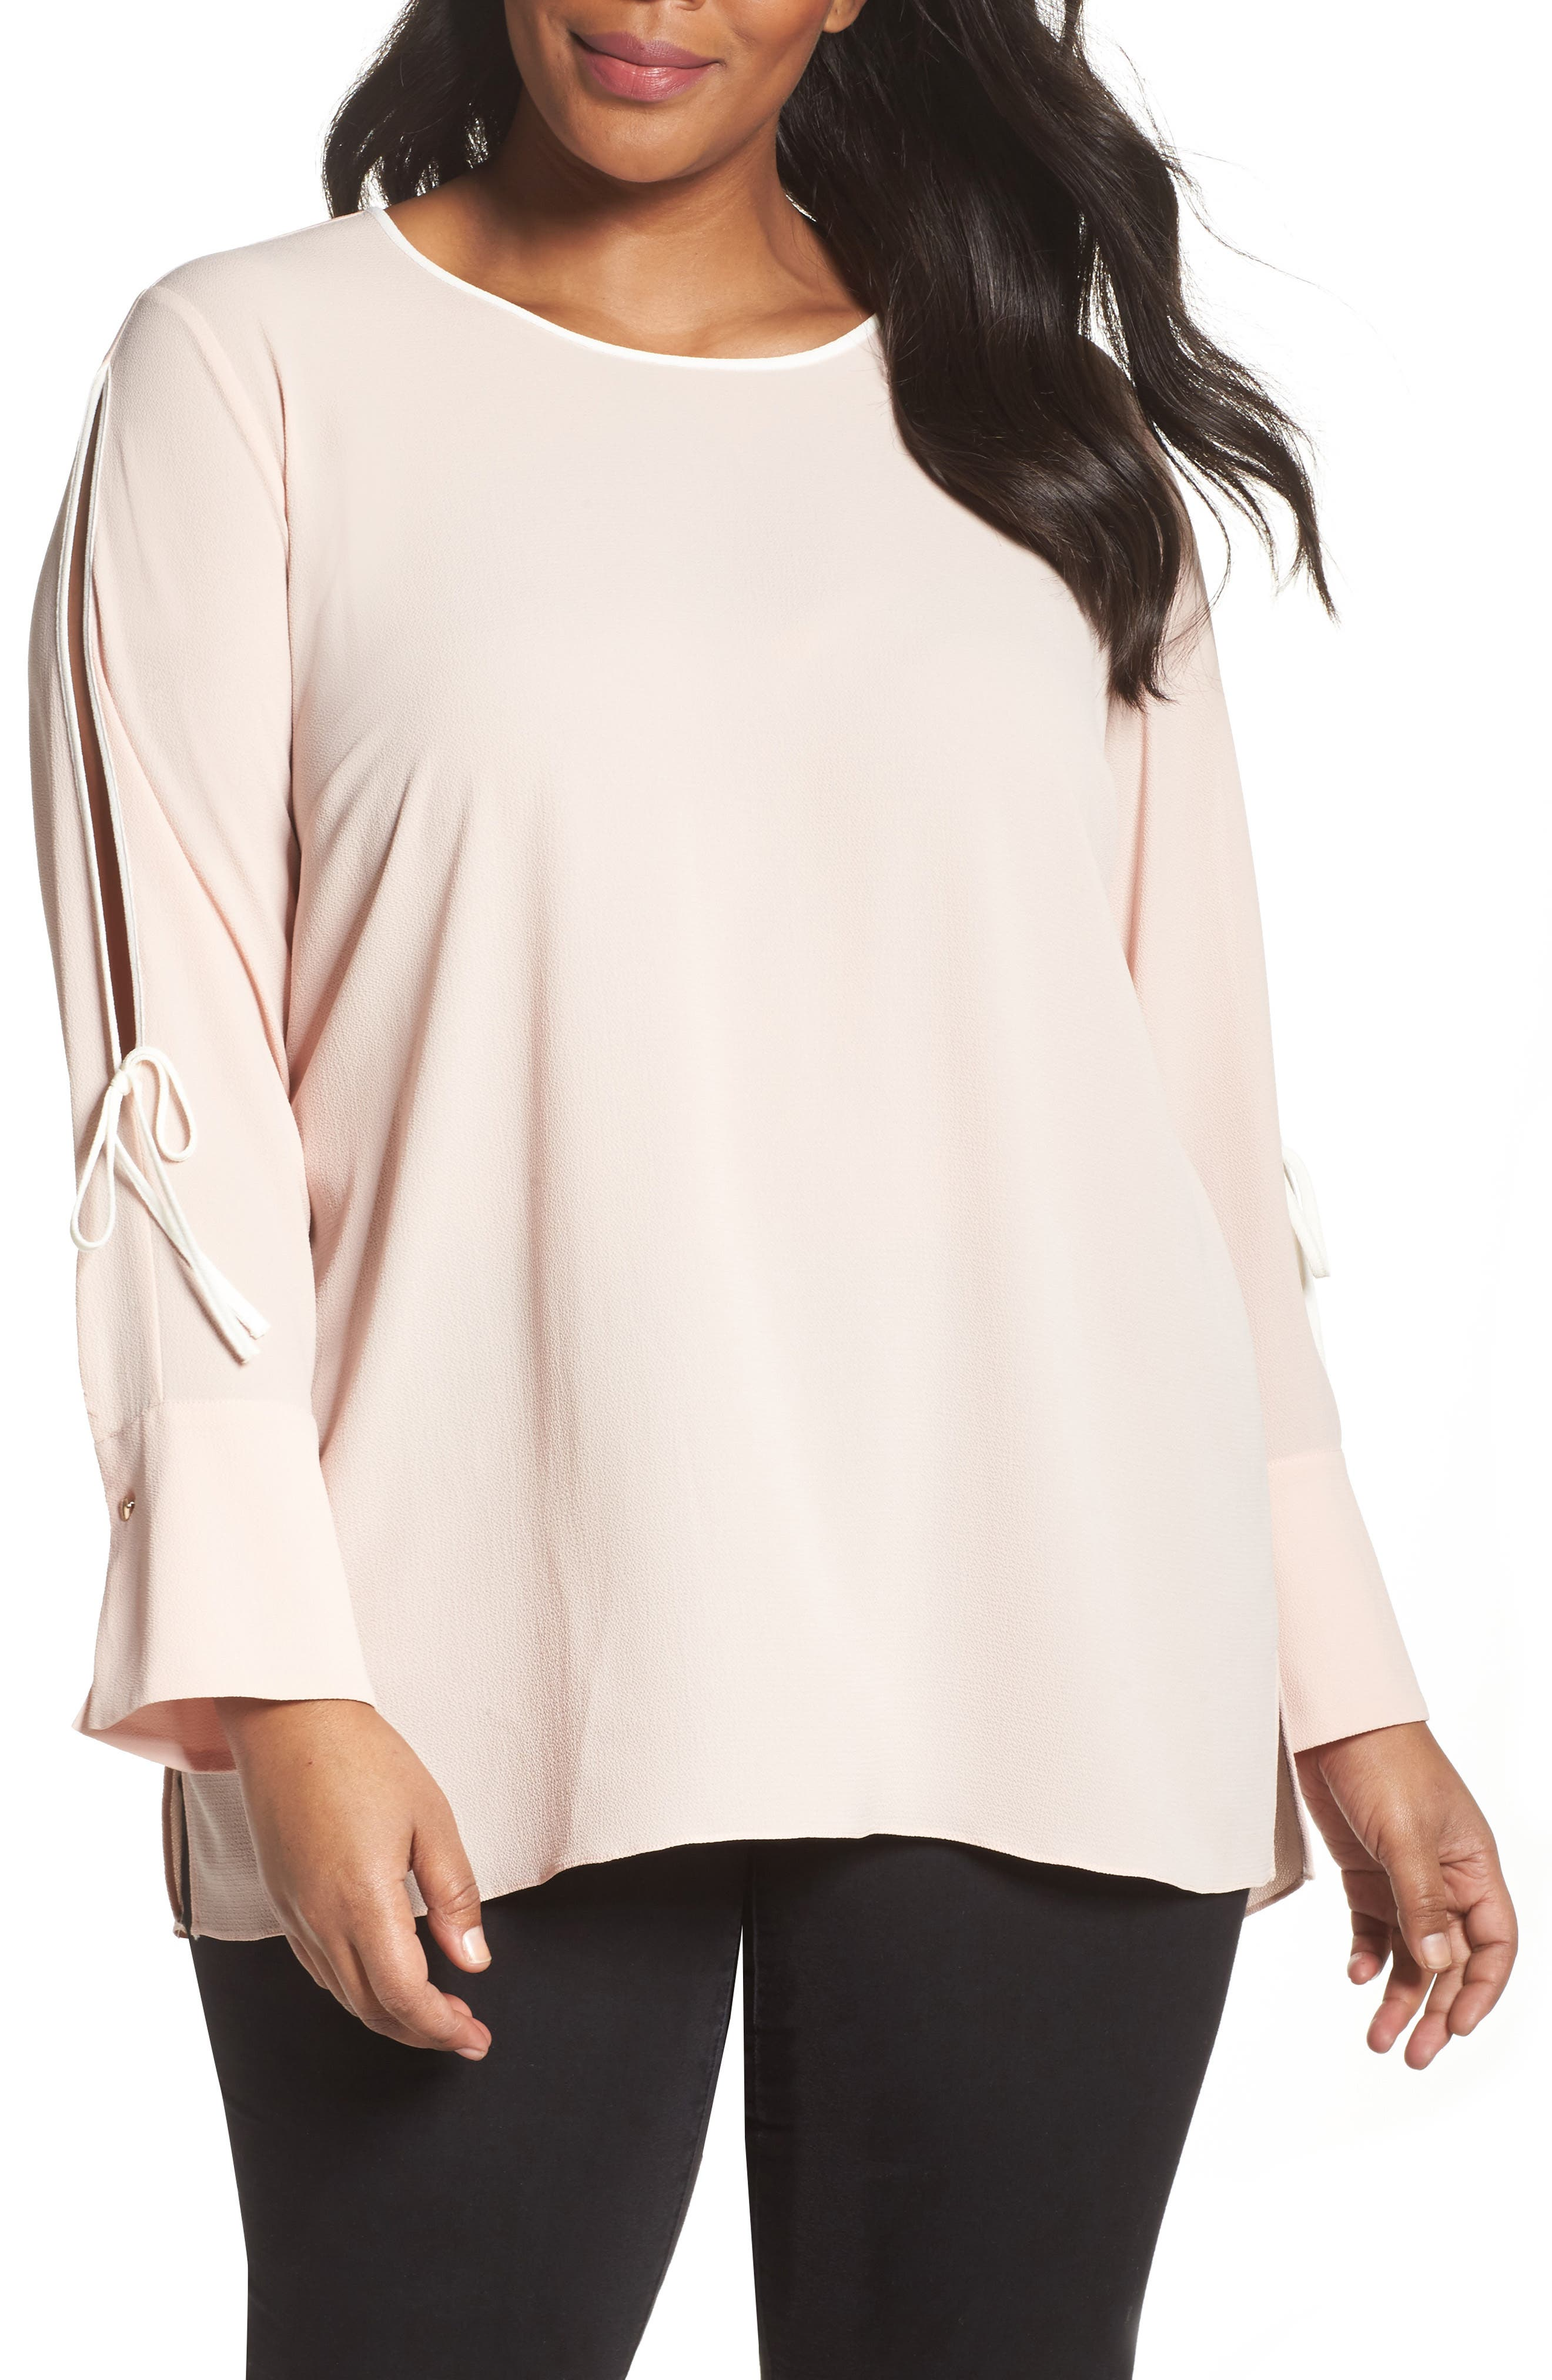 Main Image - Vince Camuto Bell Cuff Split Sleeve Shirt (Plus Size)